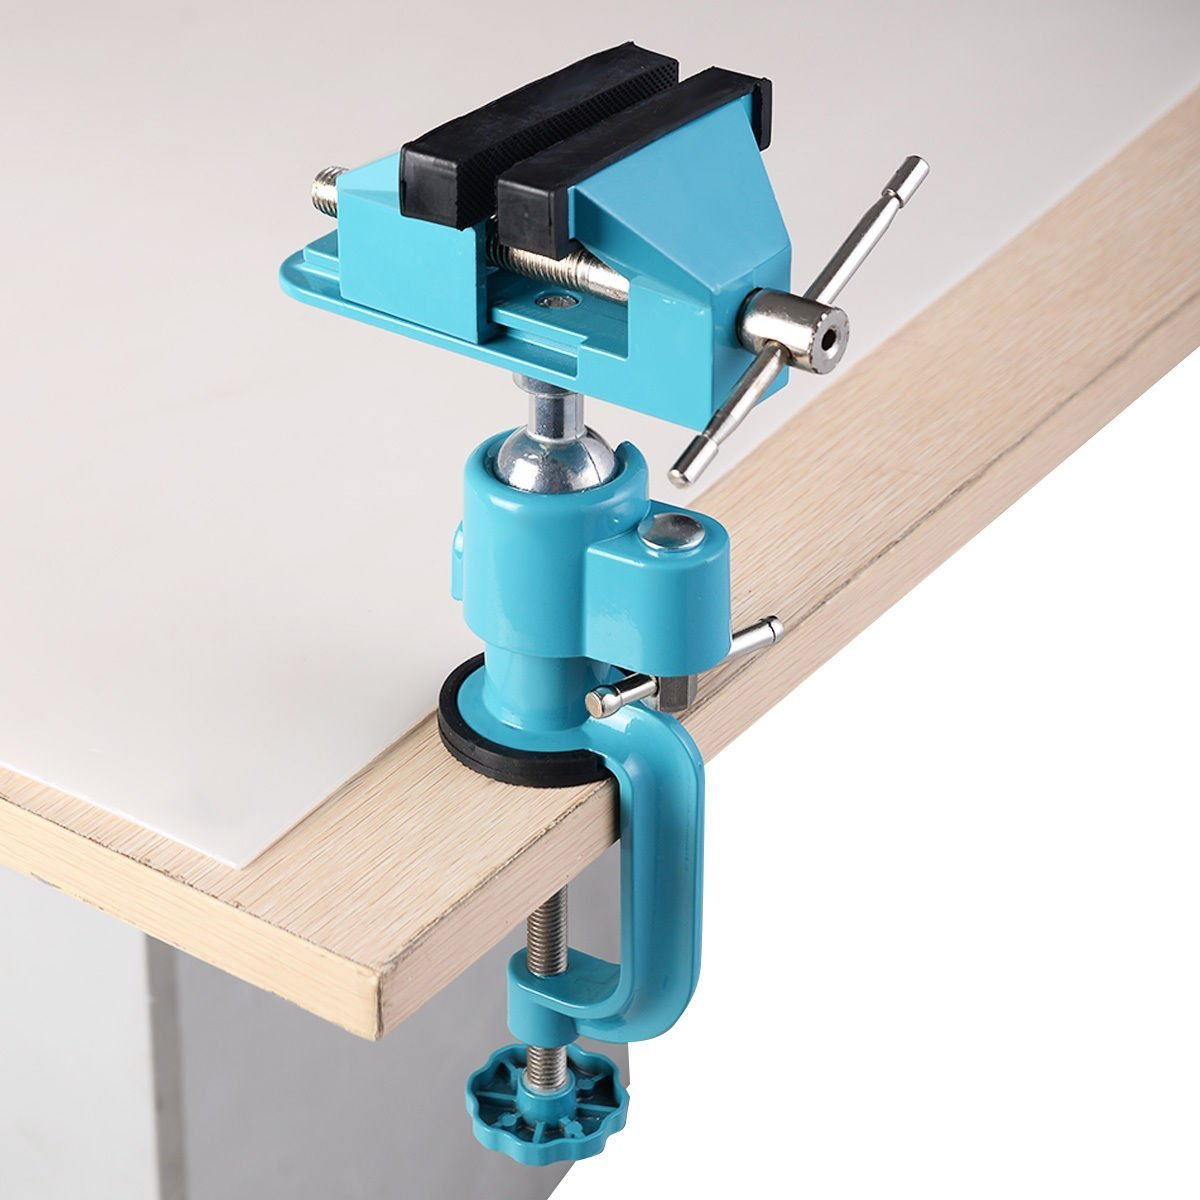 Goplus Bench Vise Swivel 3'' Tabletop Clamp Vice Tilts Rotate 360° Universal Work